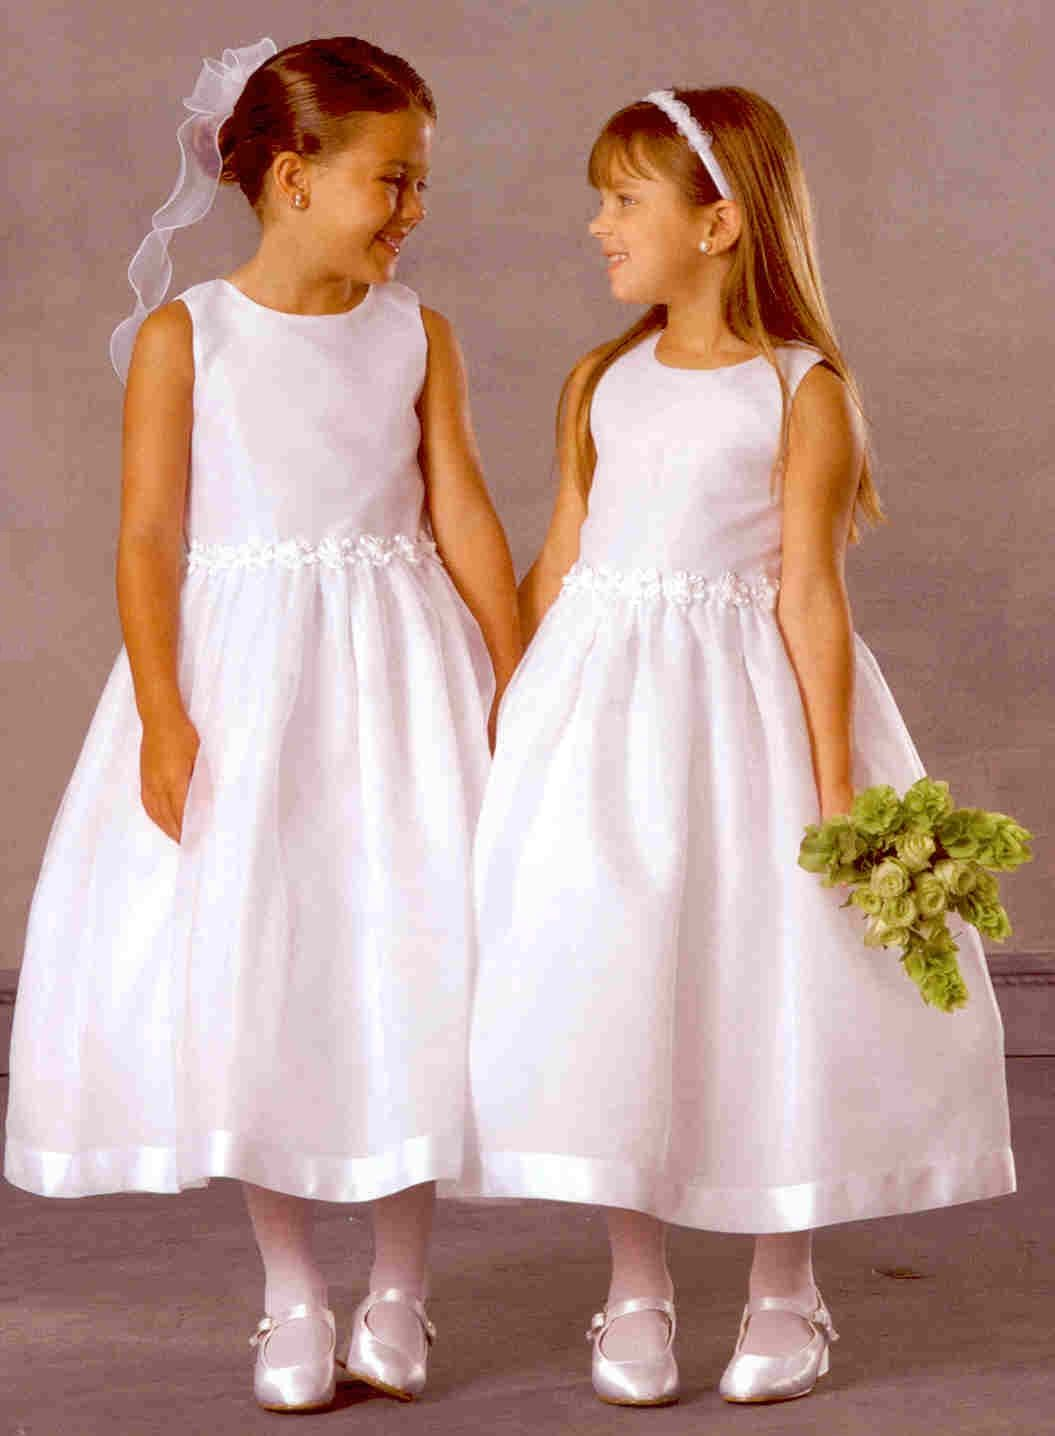 Flower girl dress flower girl dresses girls dresses and weddings flower girl dress ombrellifo Gallery